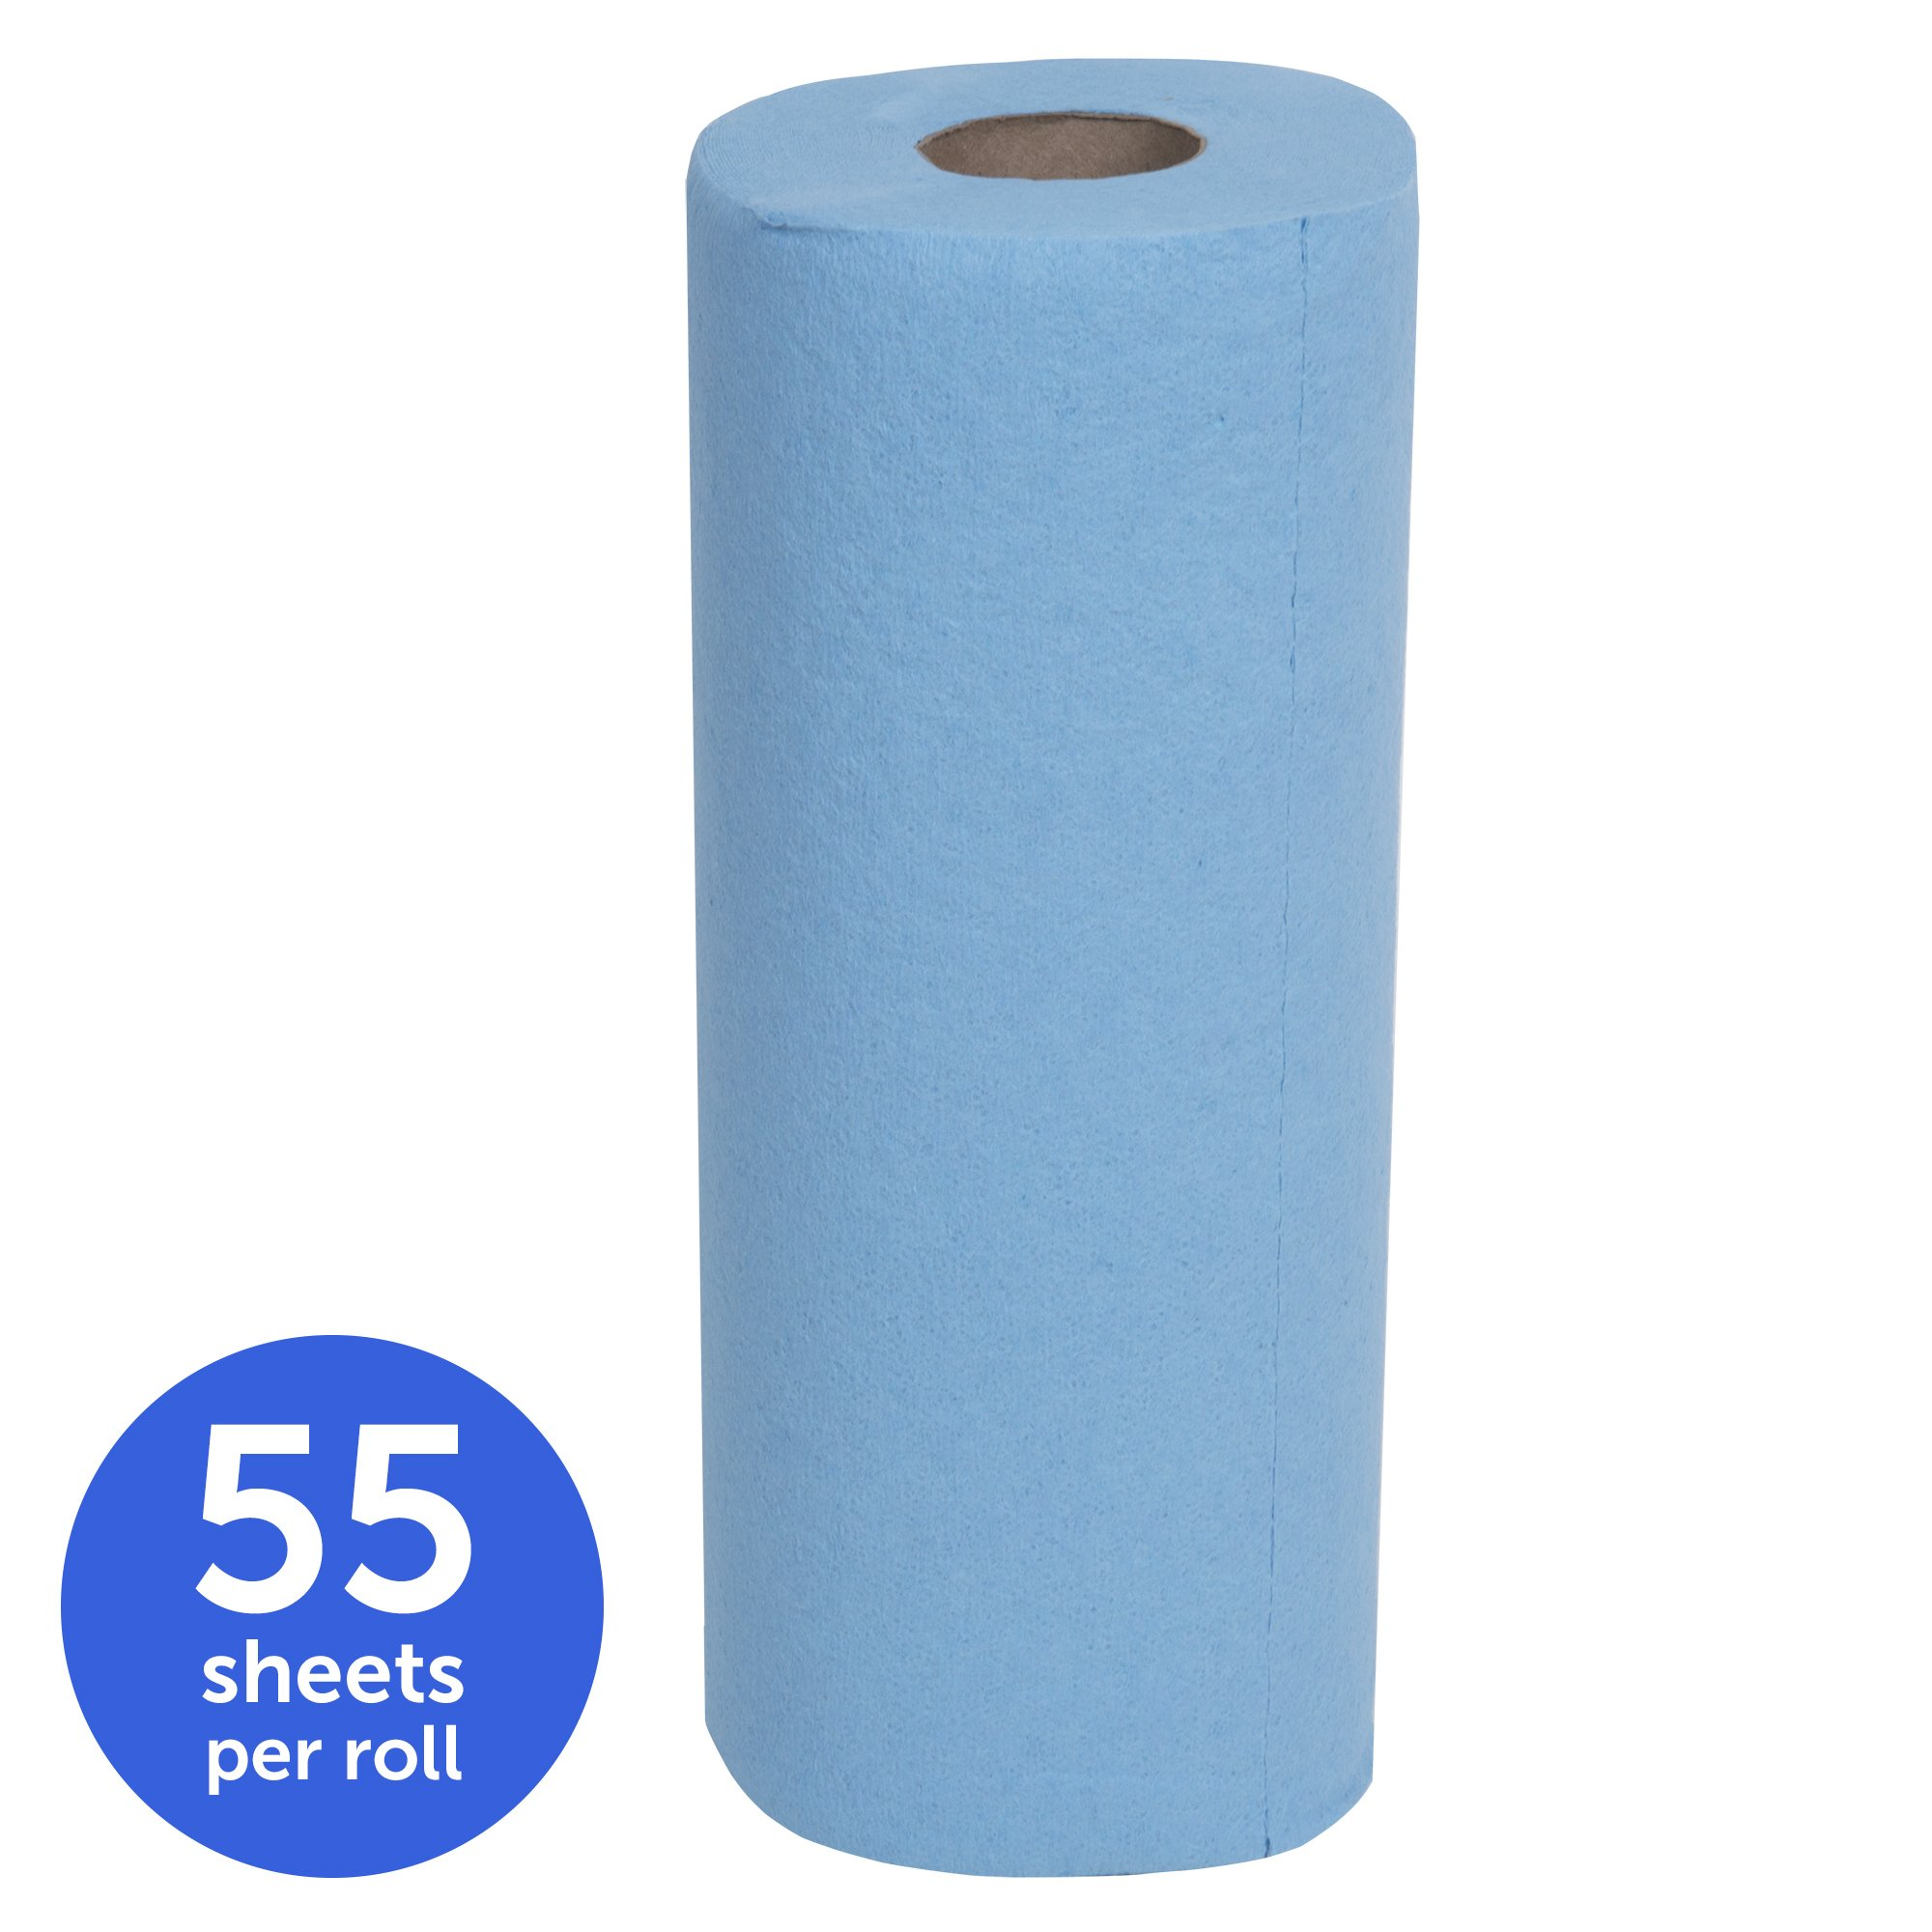 Scott Shop Towels Original (75143), Blue, 55 Sheets / Standard Roll, 30 Rolls / Case (10 Bundles of 3 Rolls), 1,650 Towels / Case by Scott (Image #3)